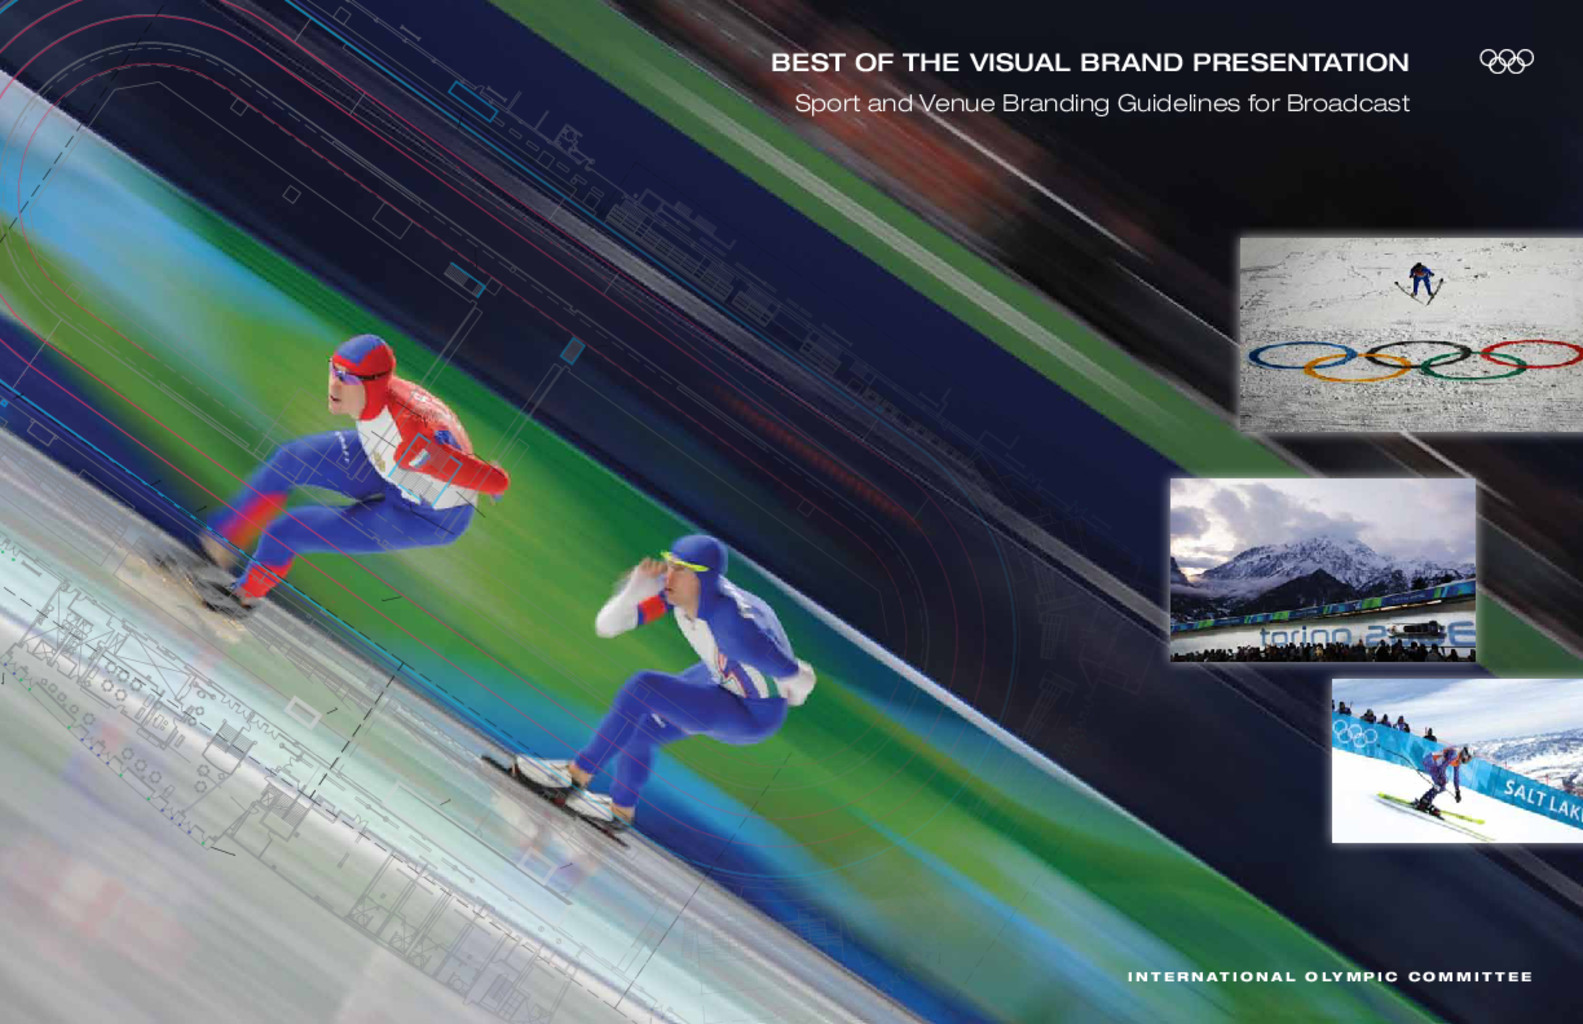 Best of the visual brand presentation : sport and venue branding guidelines for broadcast / International Olympic Committee | International Olympic Committee